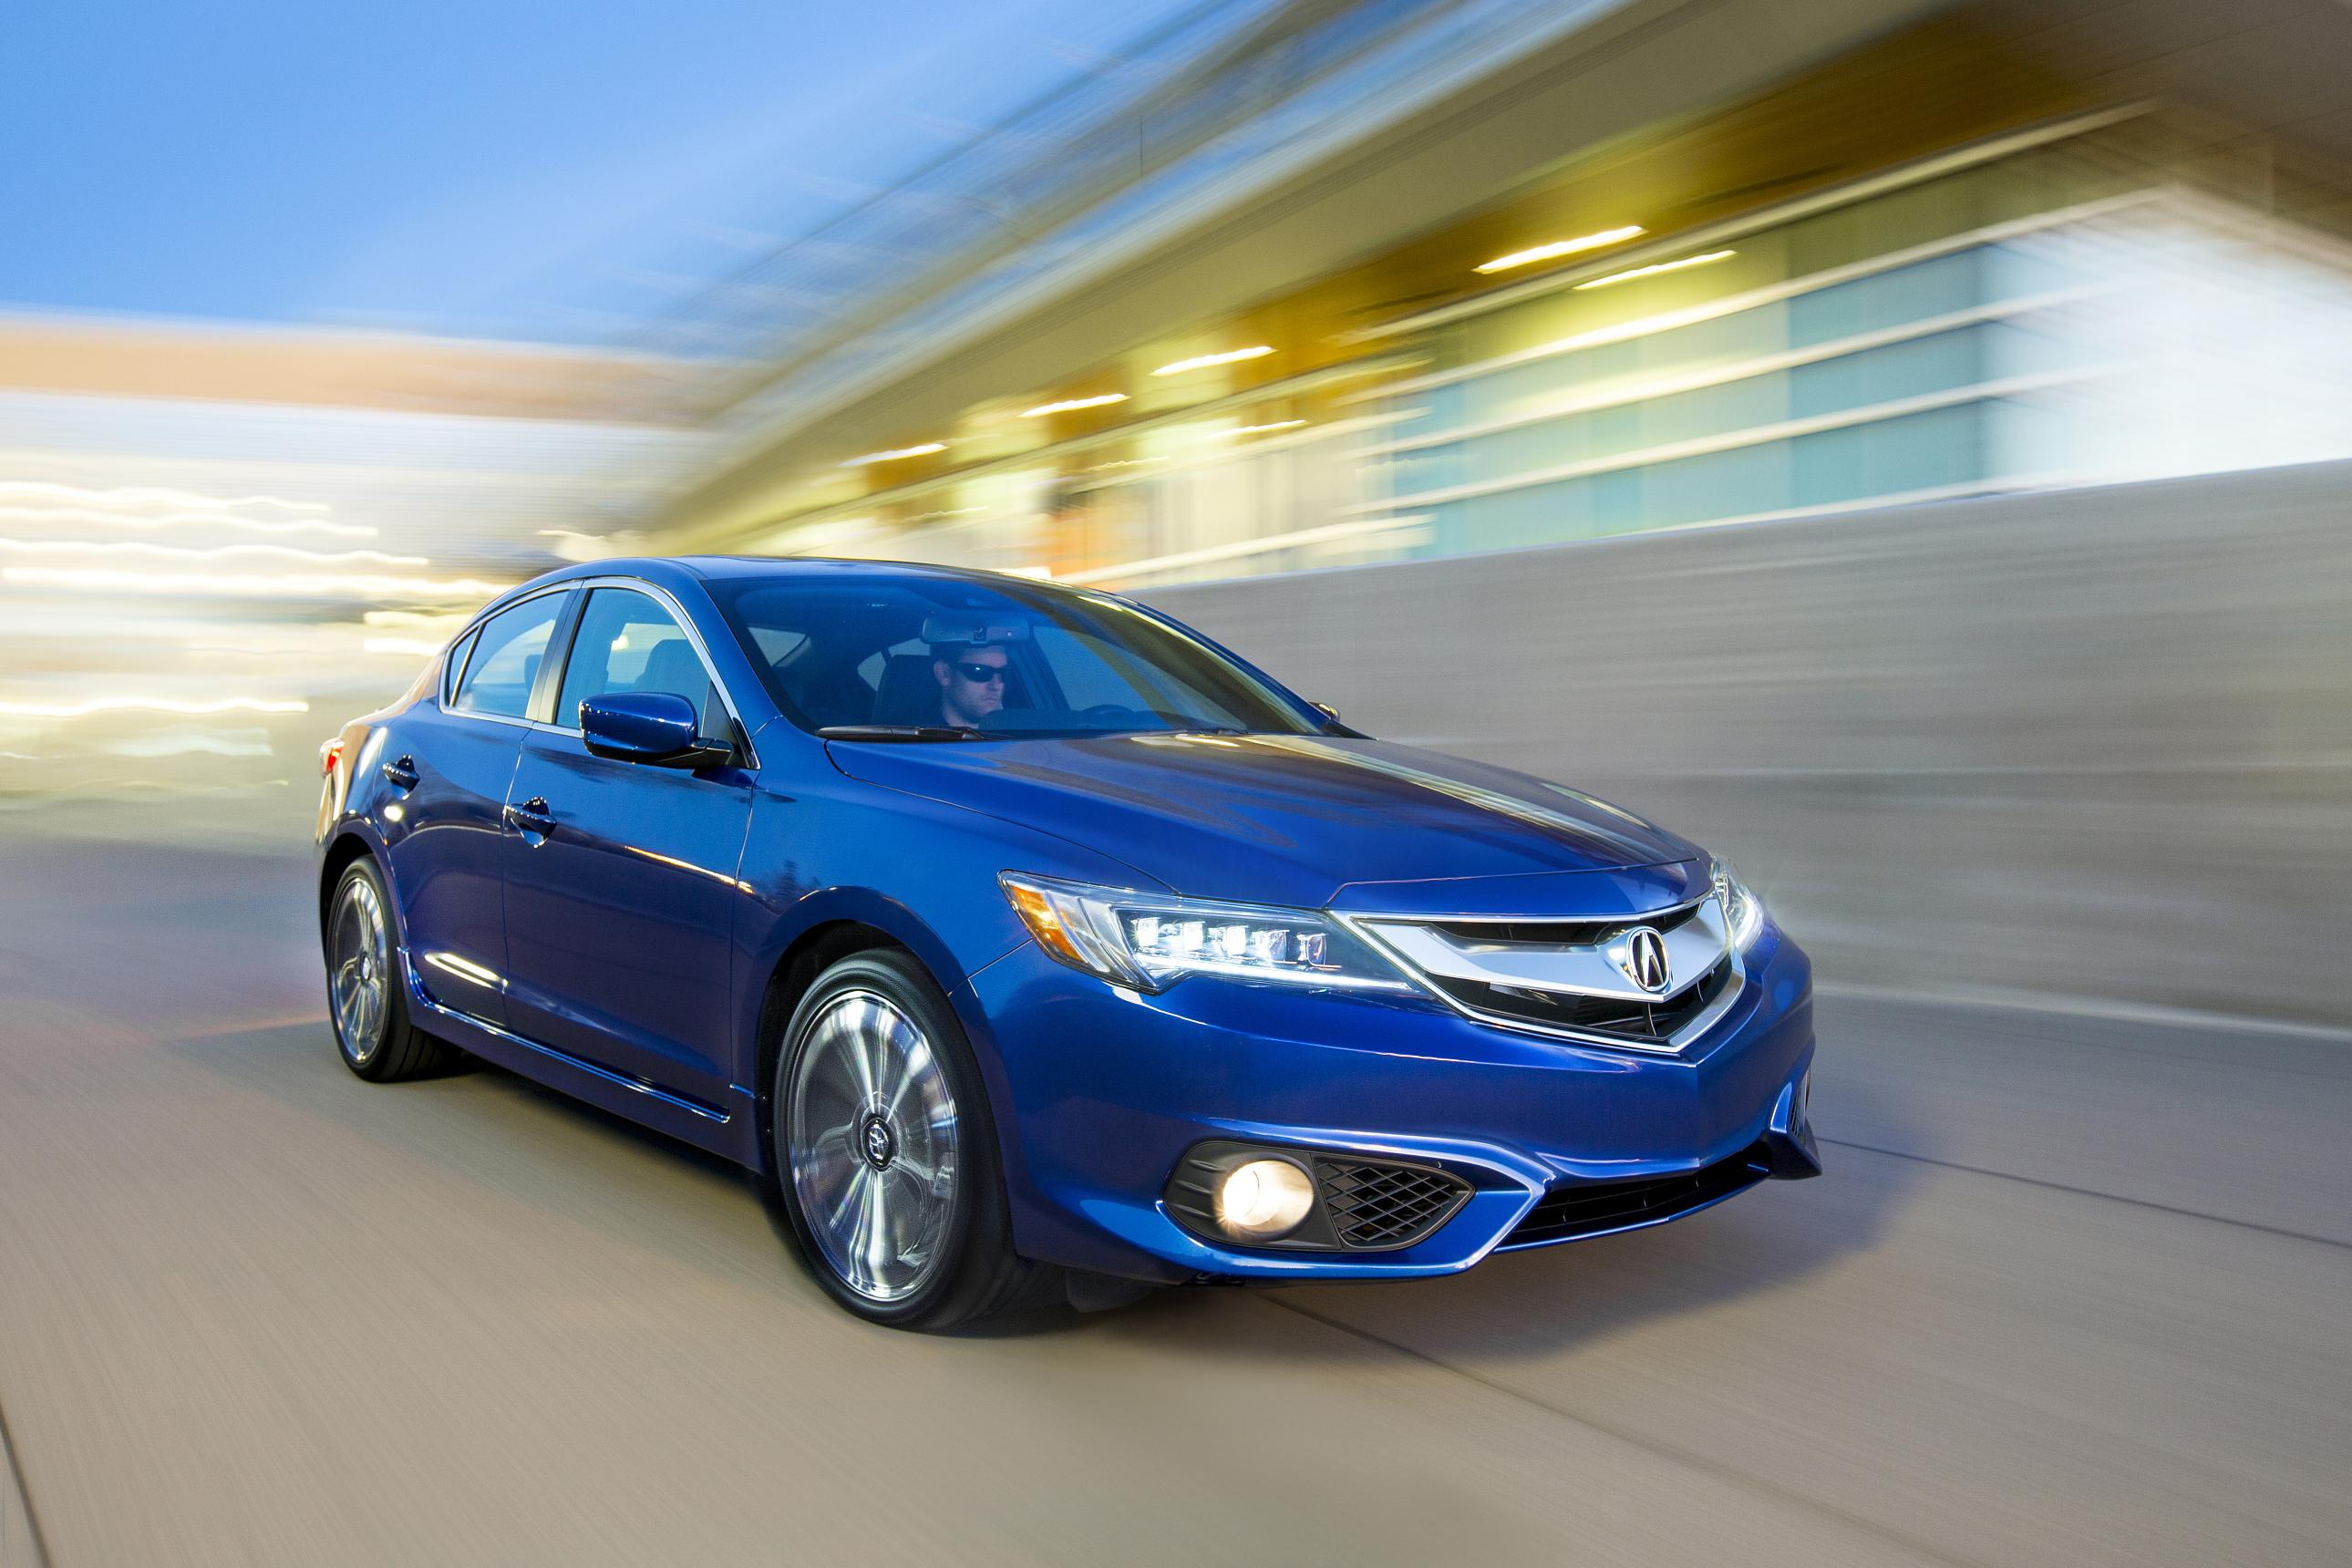 #12. 2016 Acura ILX Is One Of The Safest Sedans 2016 Has To Offer